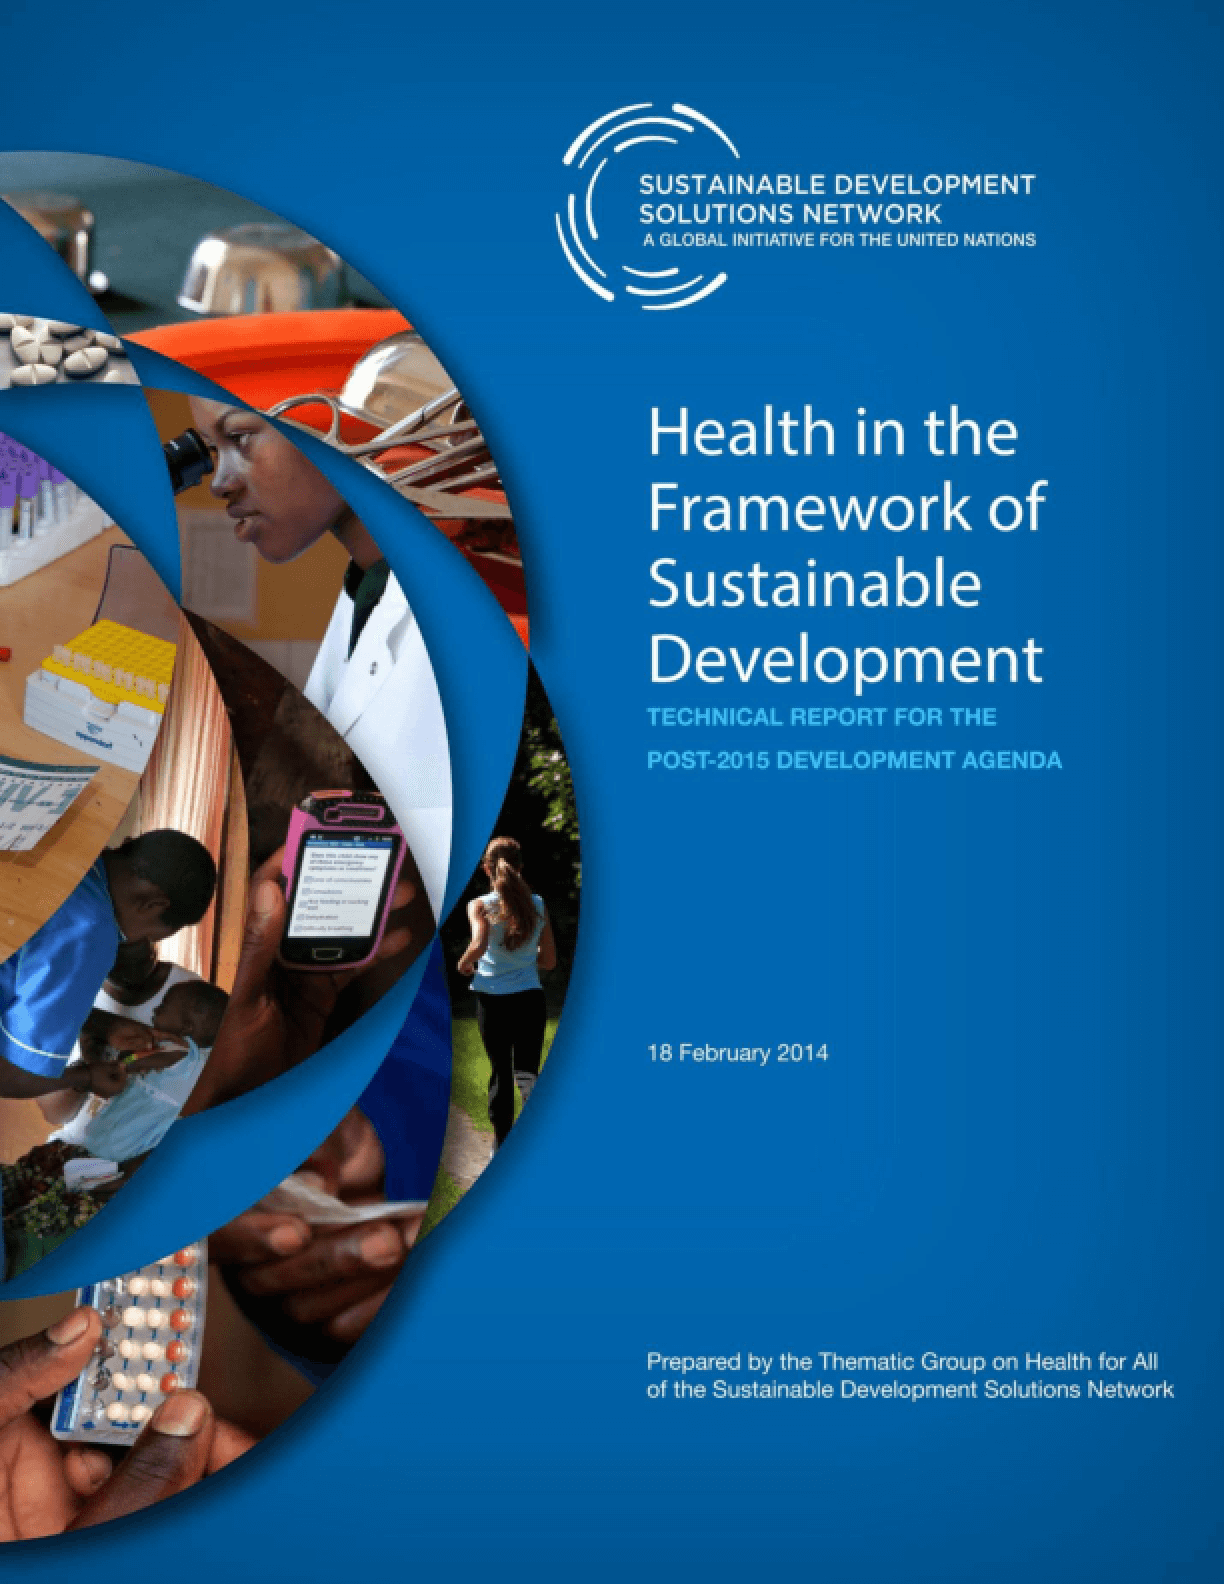 Health in the Framework of Sustainable Development: Technical Report for the Post-2015 Development Agenda